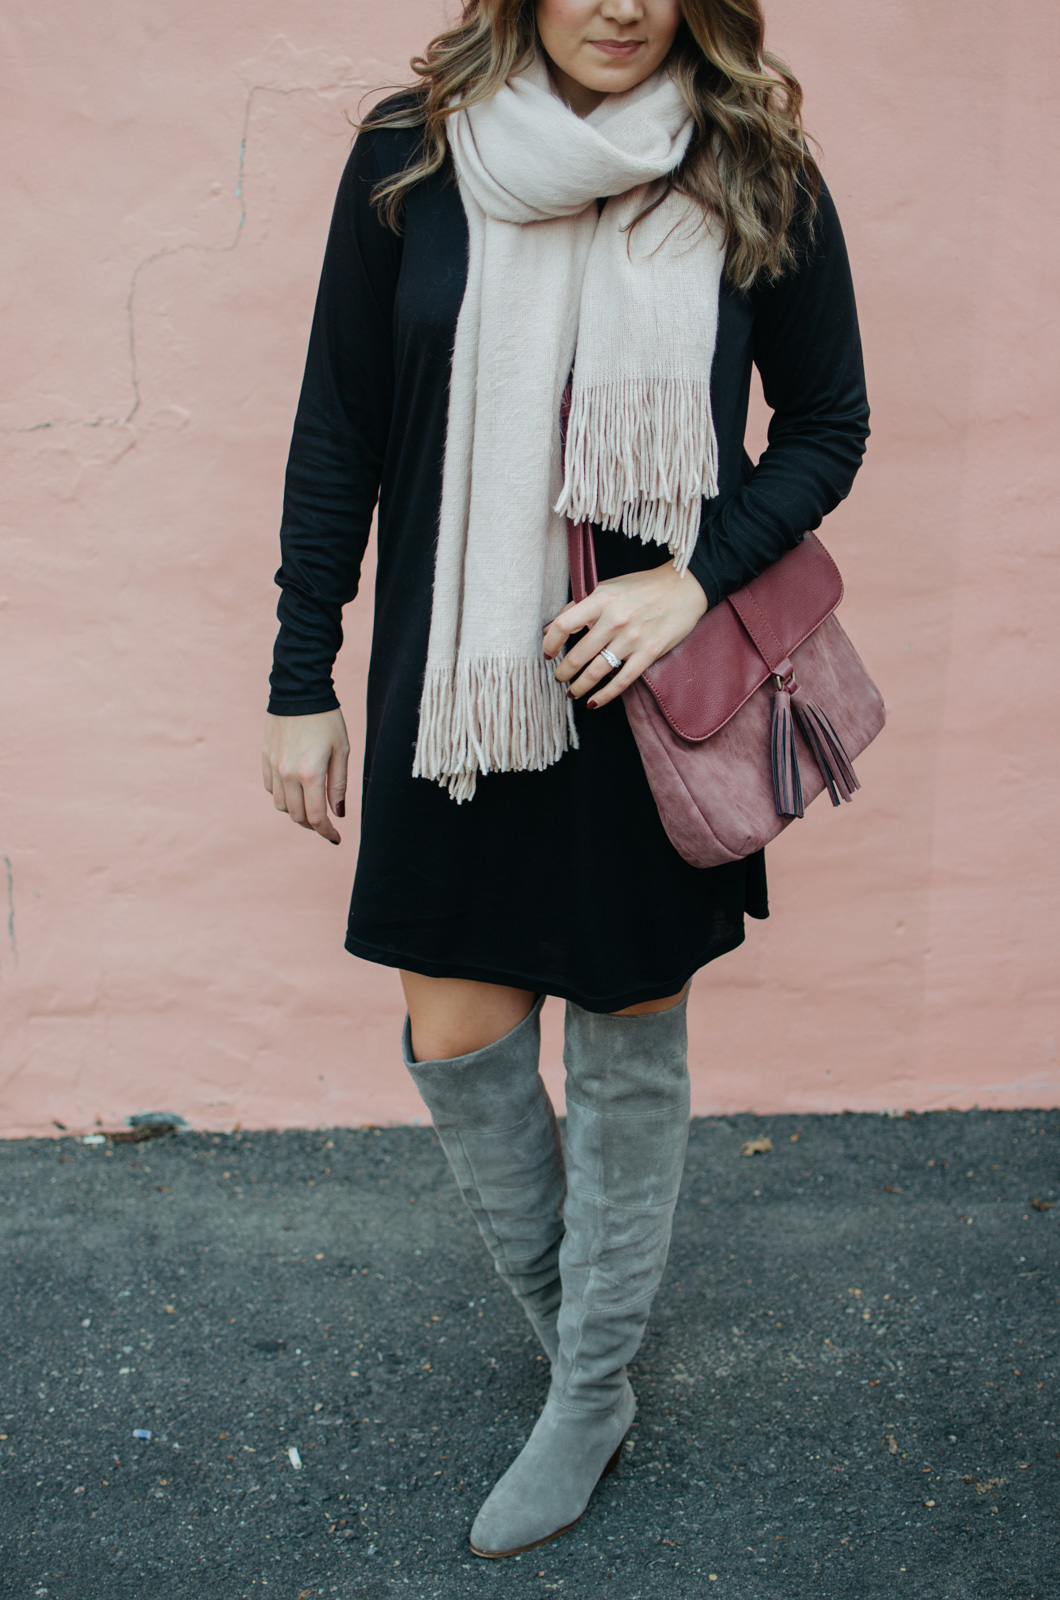 best winter casual outfits - winter dress outfit idea | Click through for outfit details or to see more cute Winter outfit ideas. bylaurenm.com